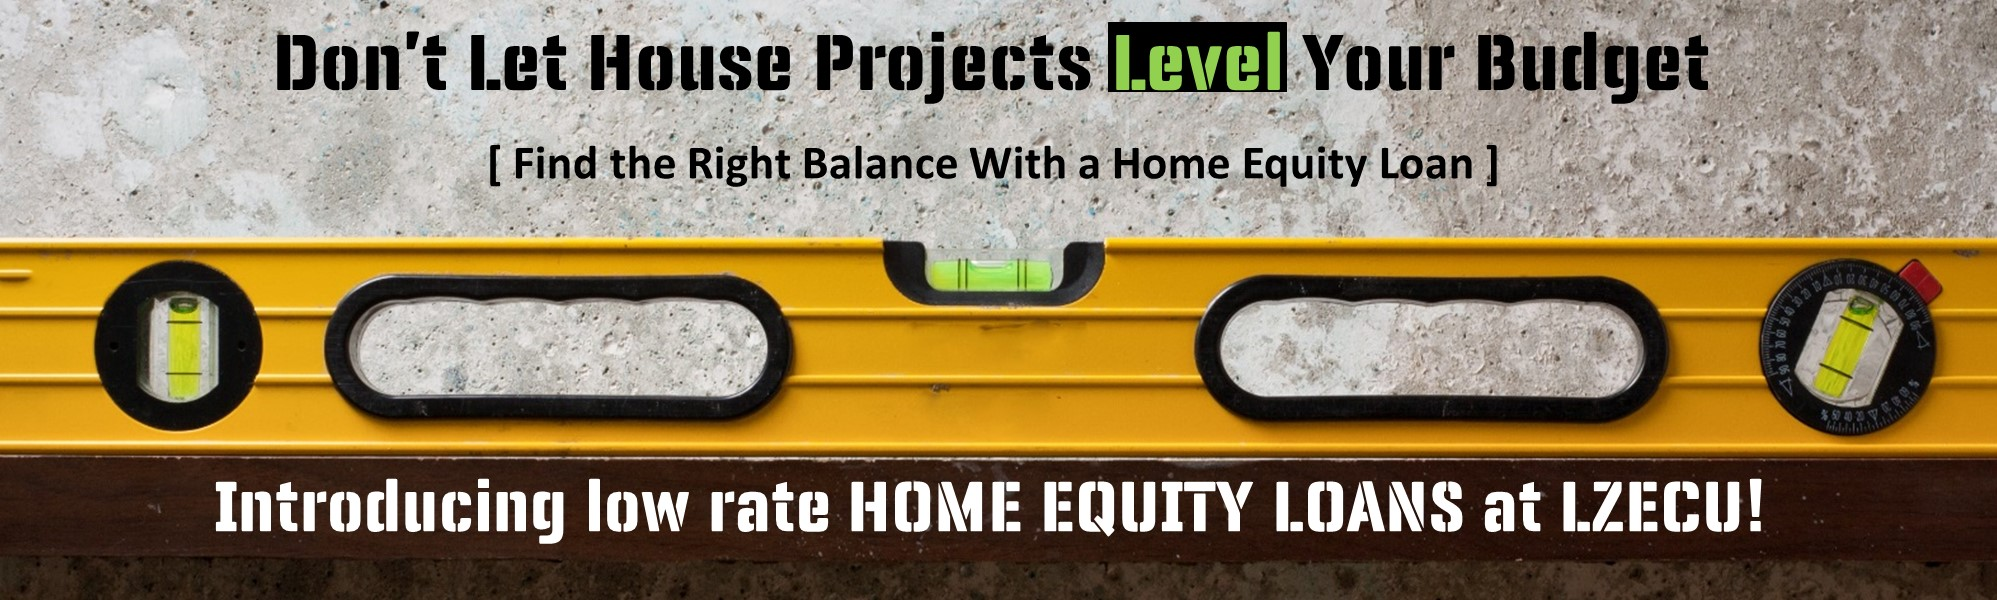 Home equity loans now here